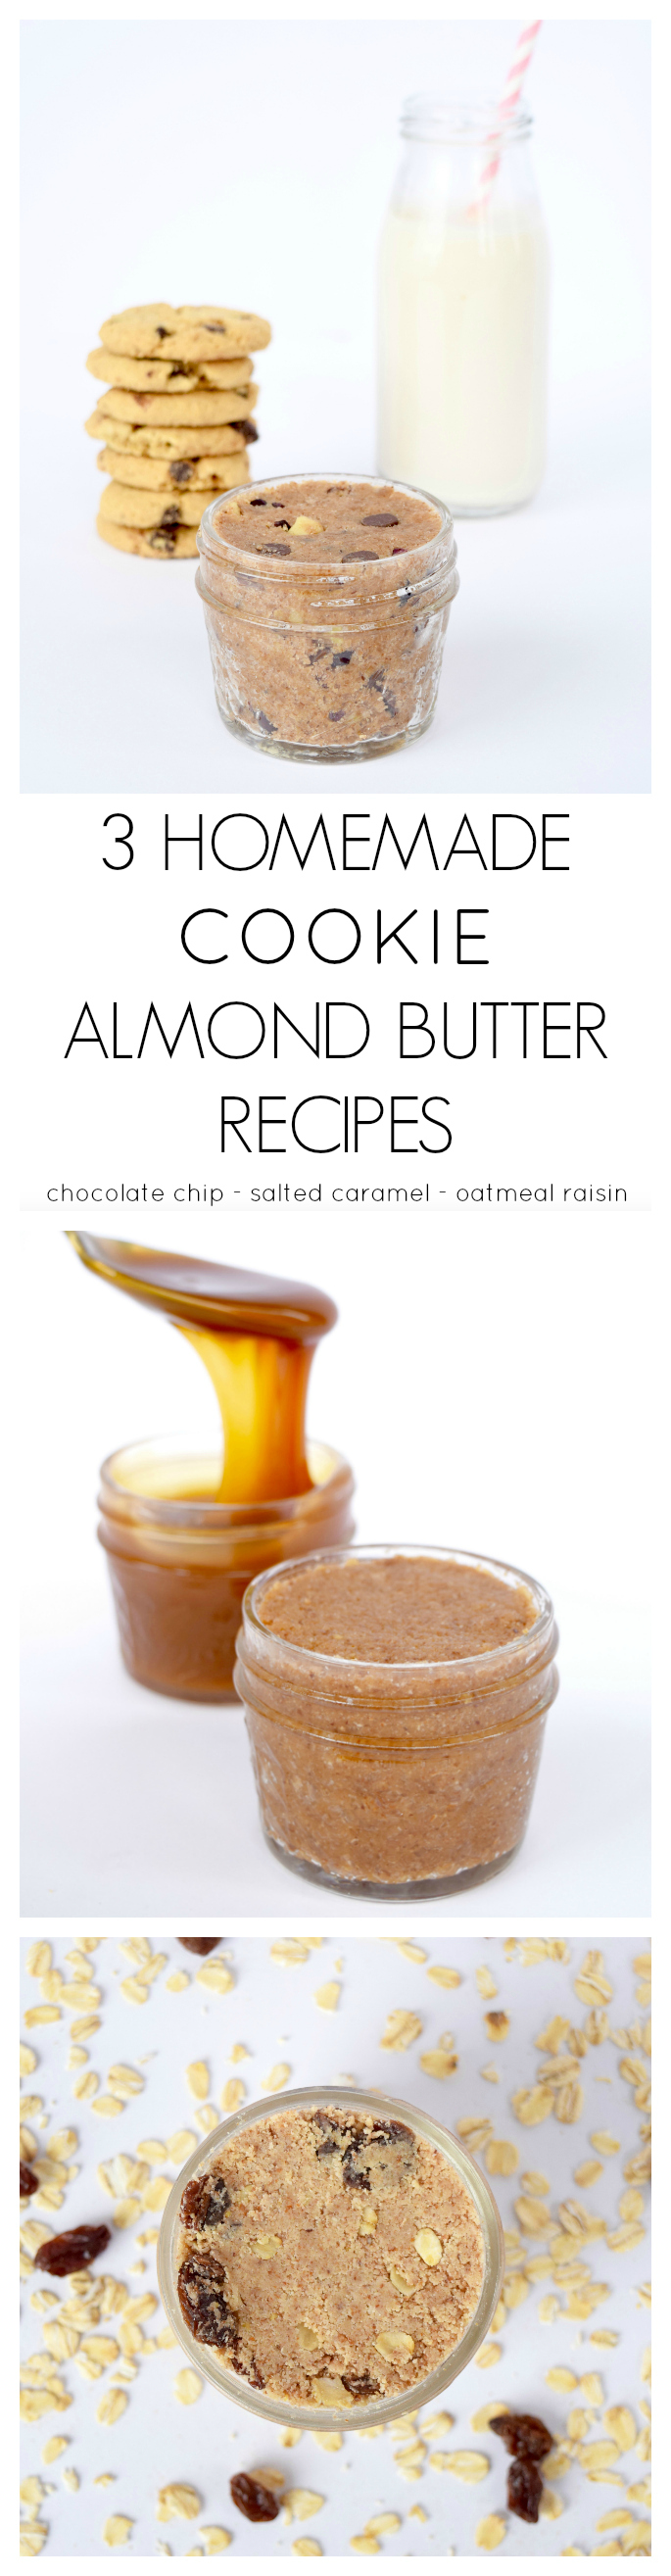 3 HOMEMADE COOKIE ALMOND BUTTER RECIPE